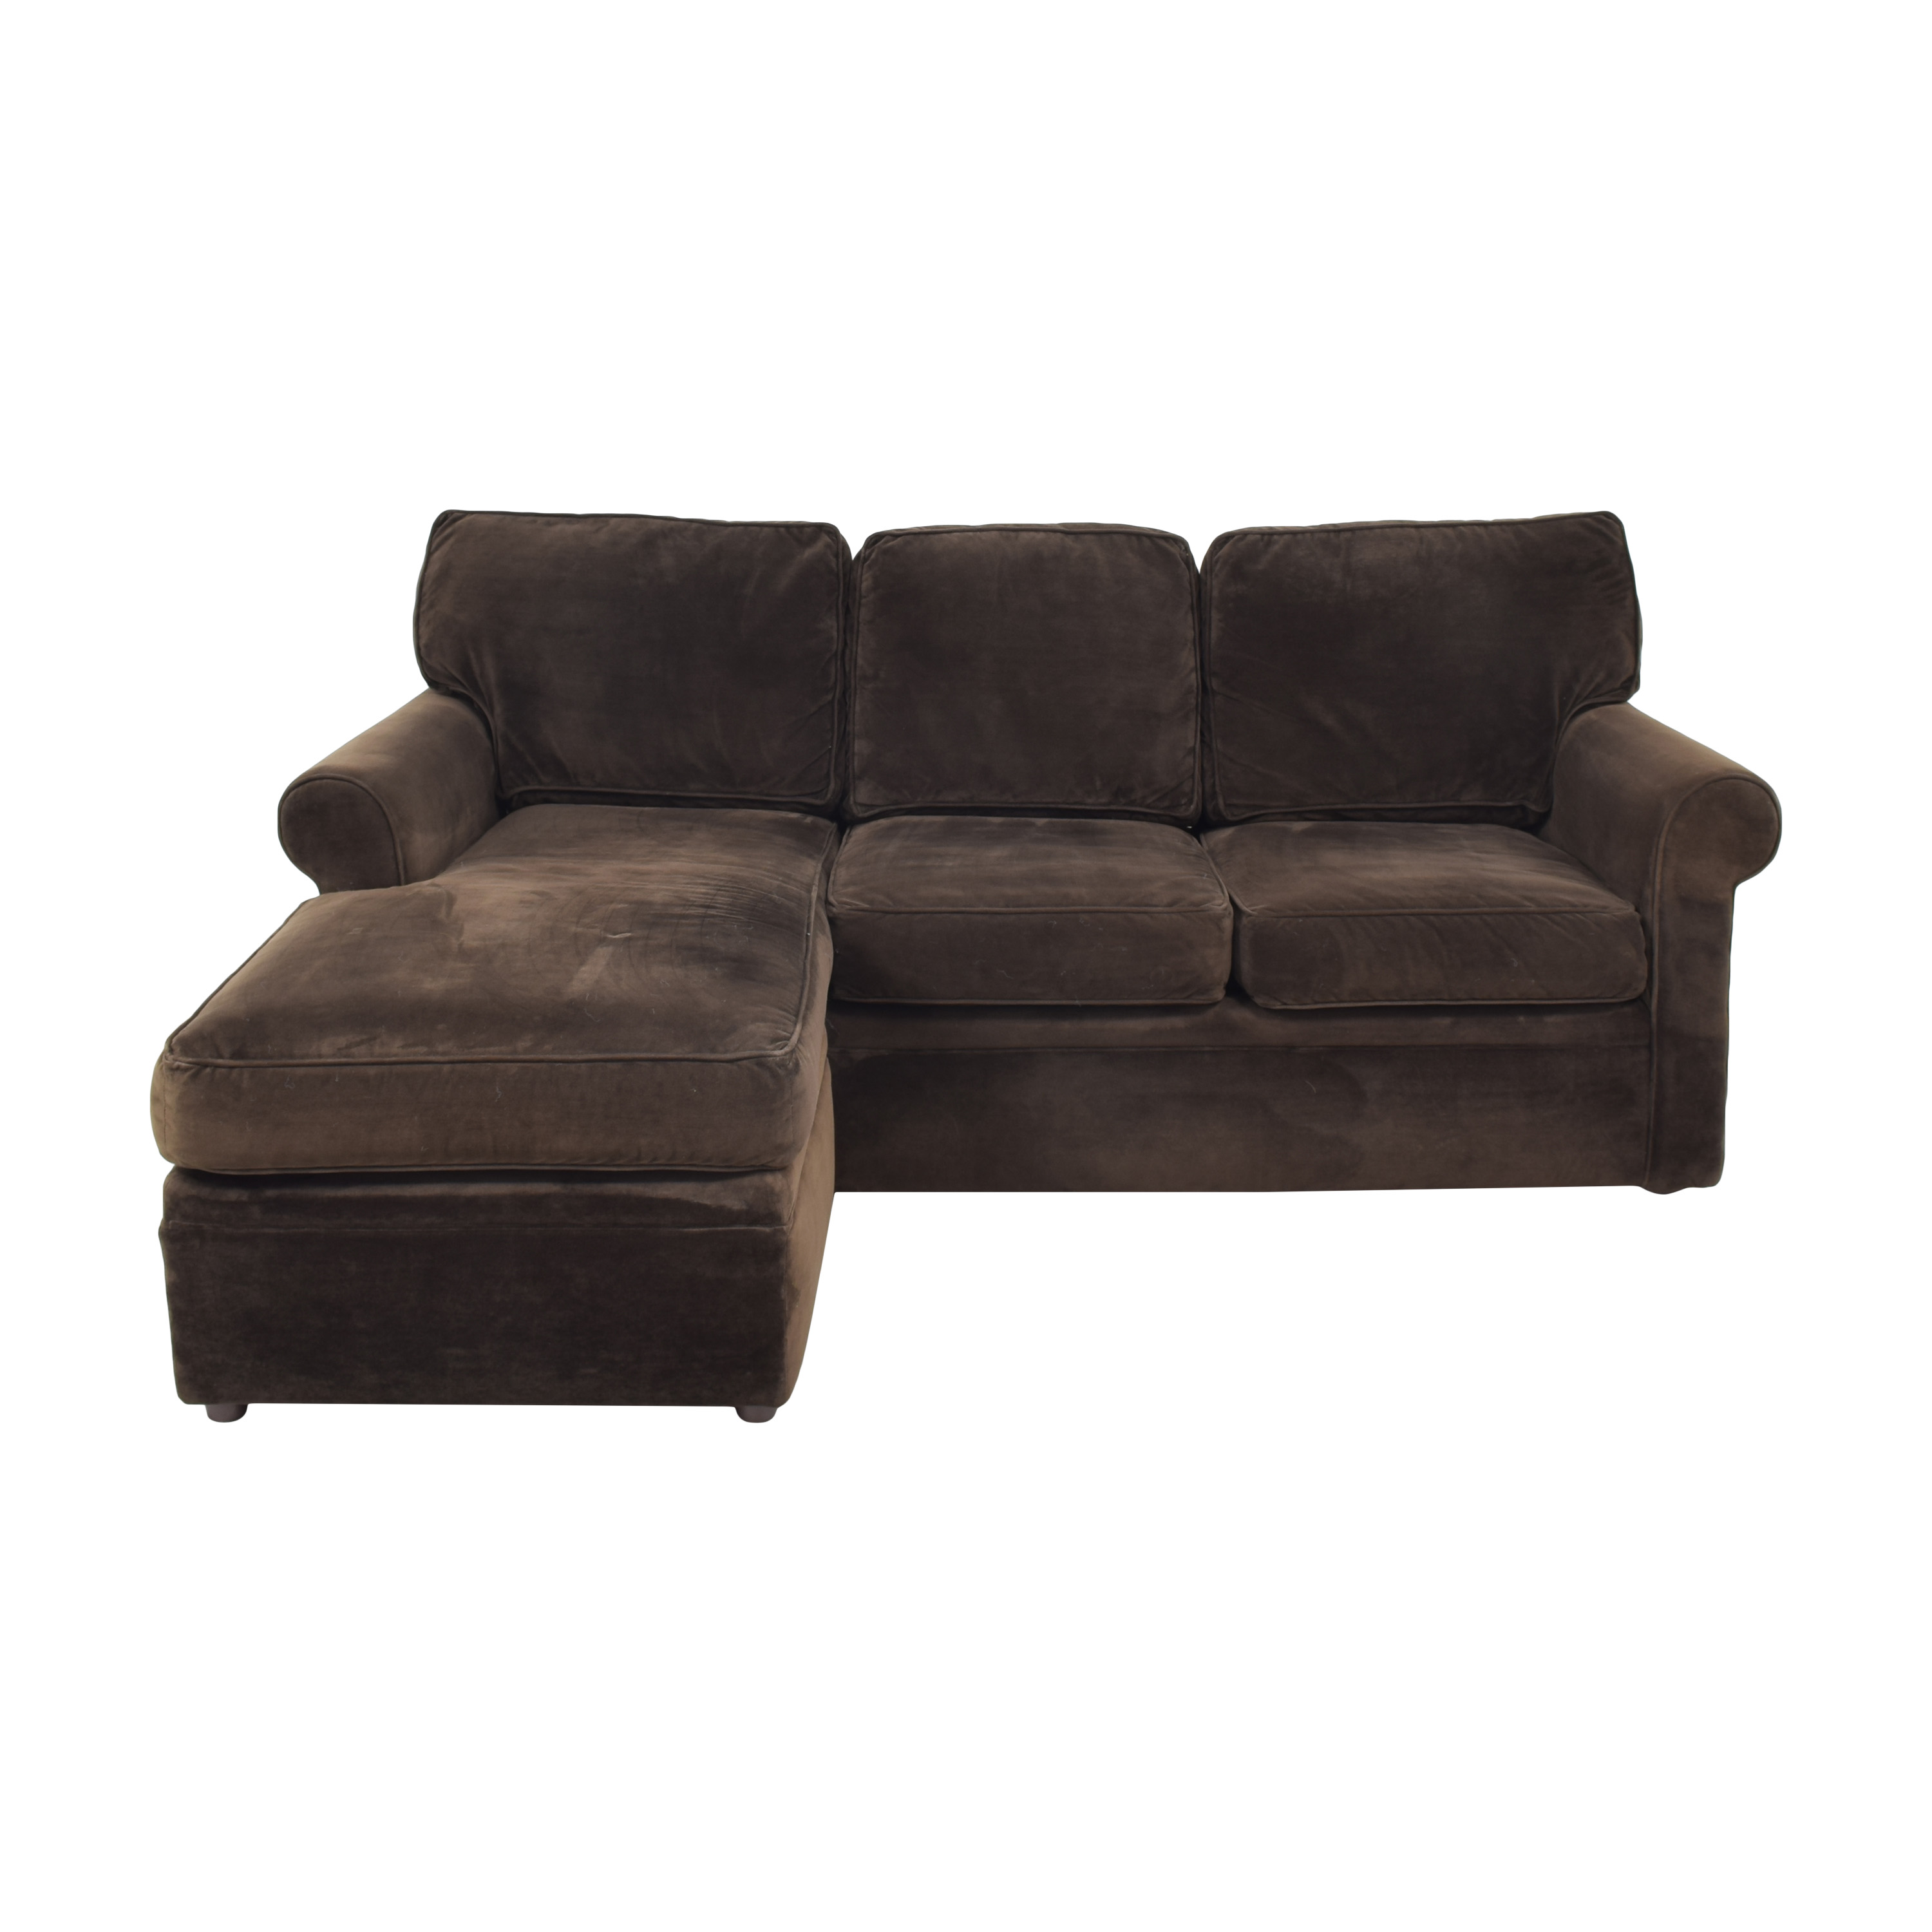 Rowe Furniture Dalton Sofa with Chaise Ottoman Rowe Furniture